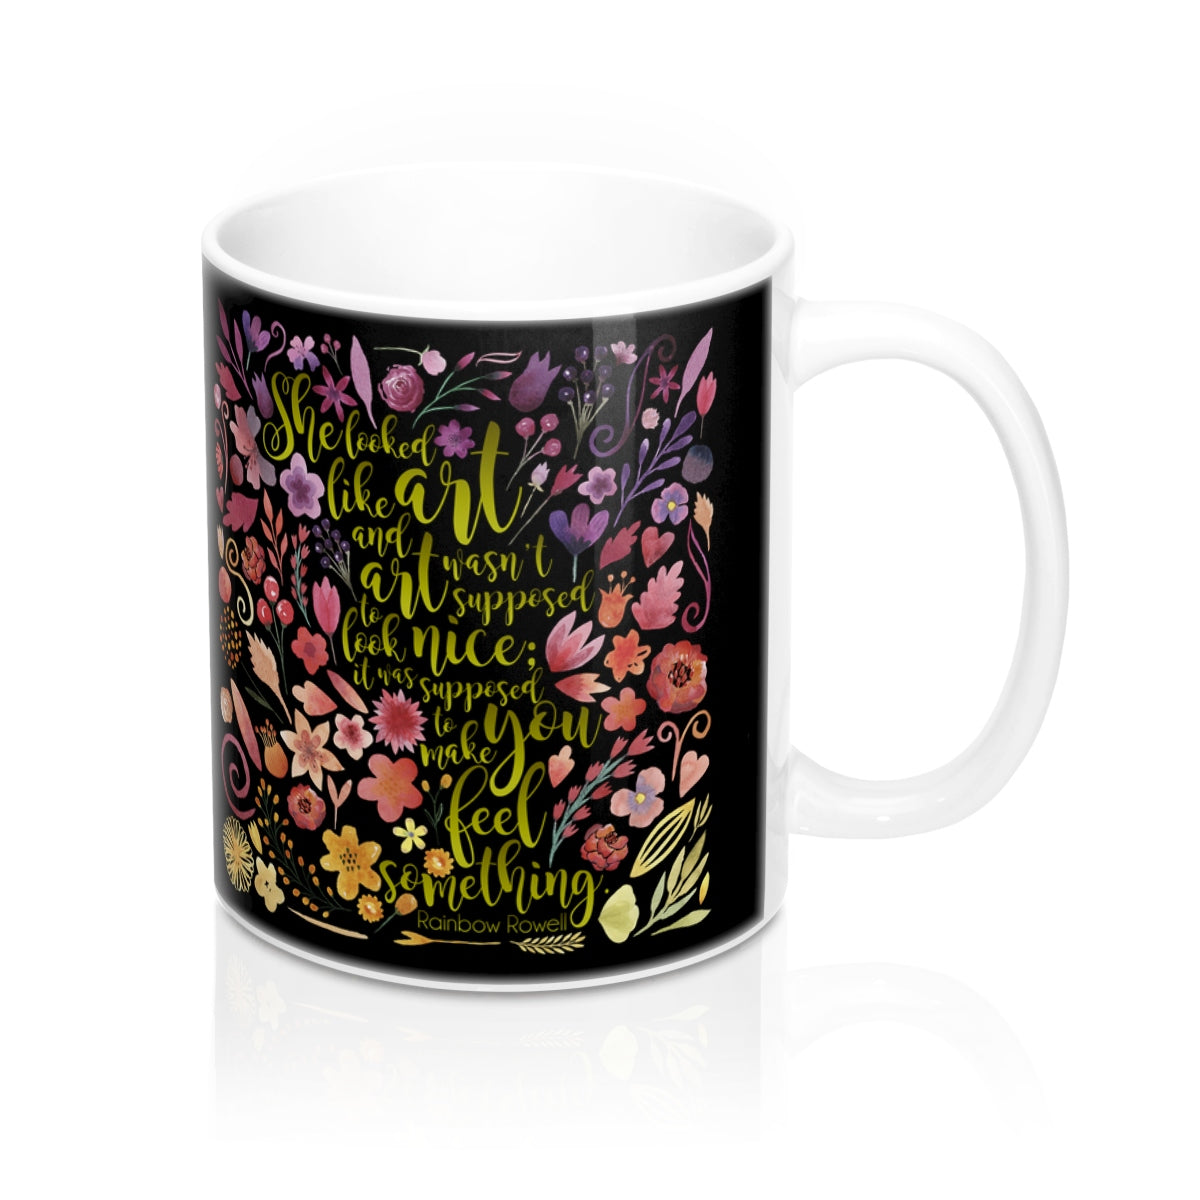 She looked like art... Eleanor and Park Quote Mug - LitLifeCo.